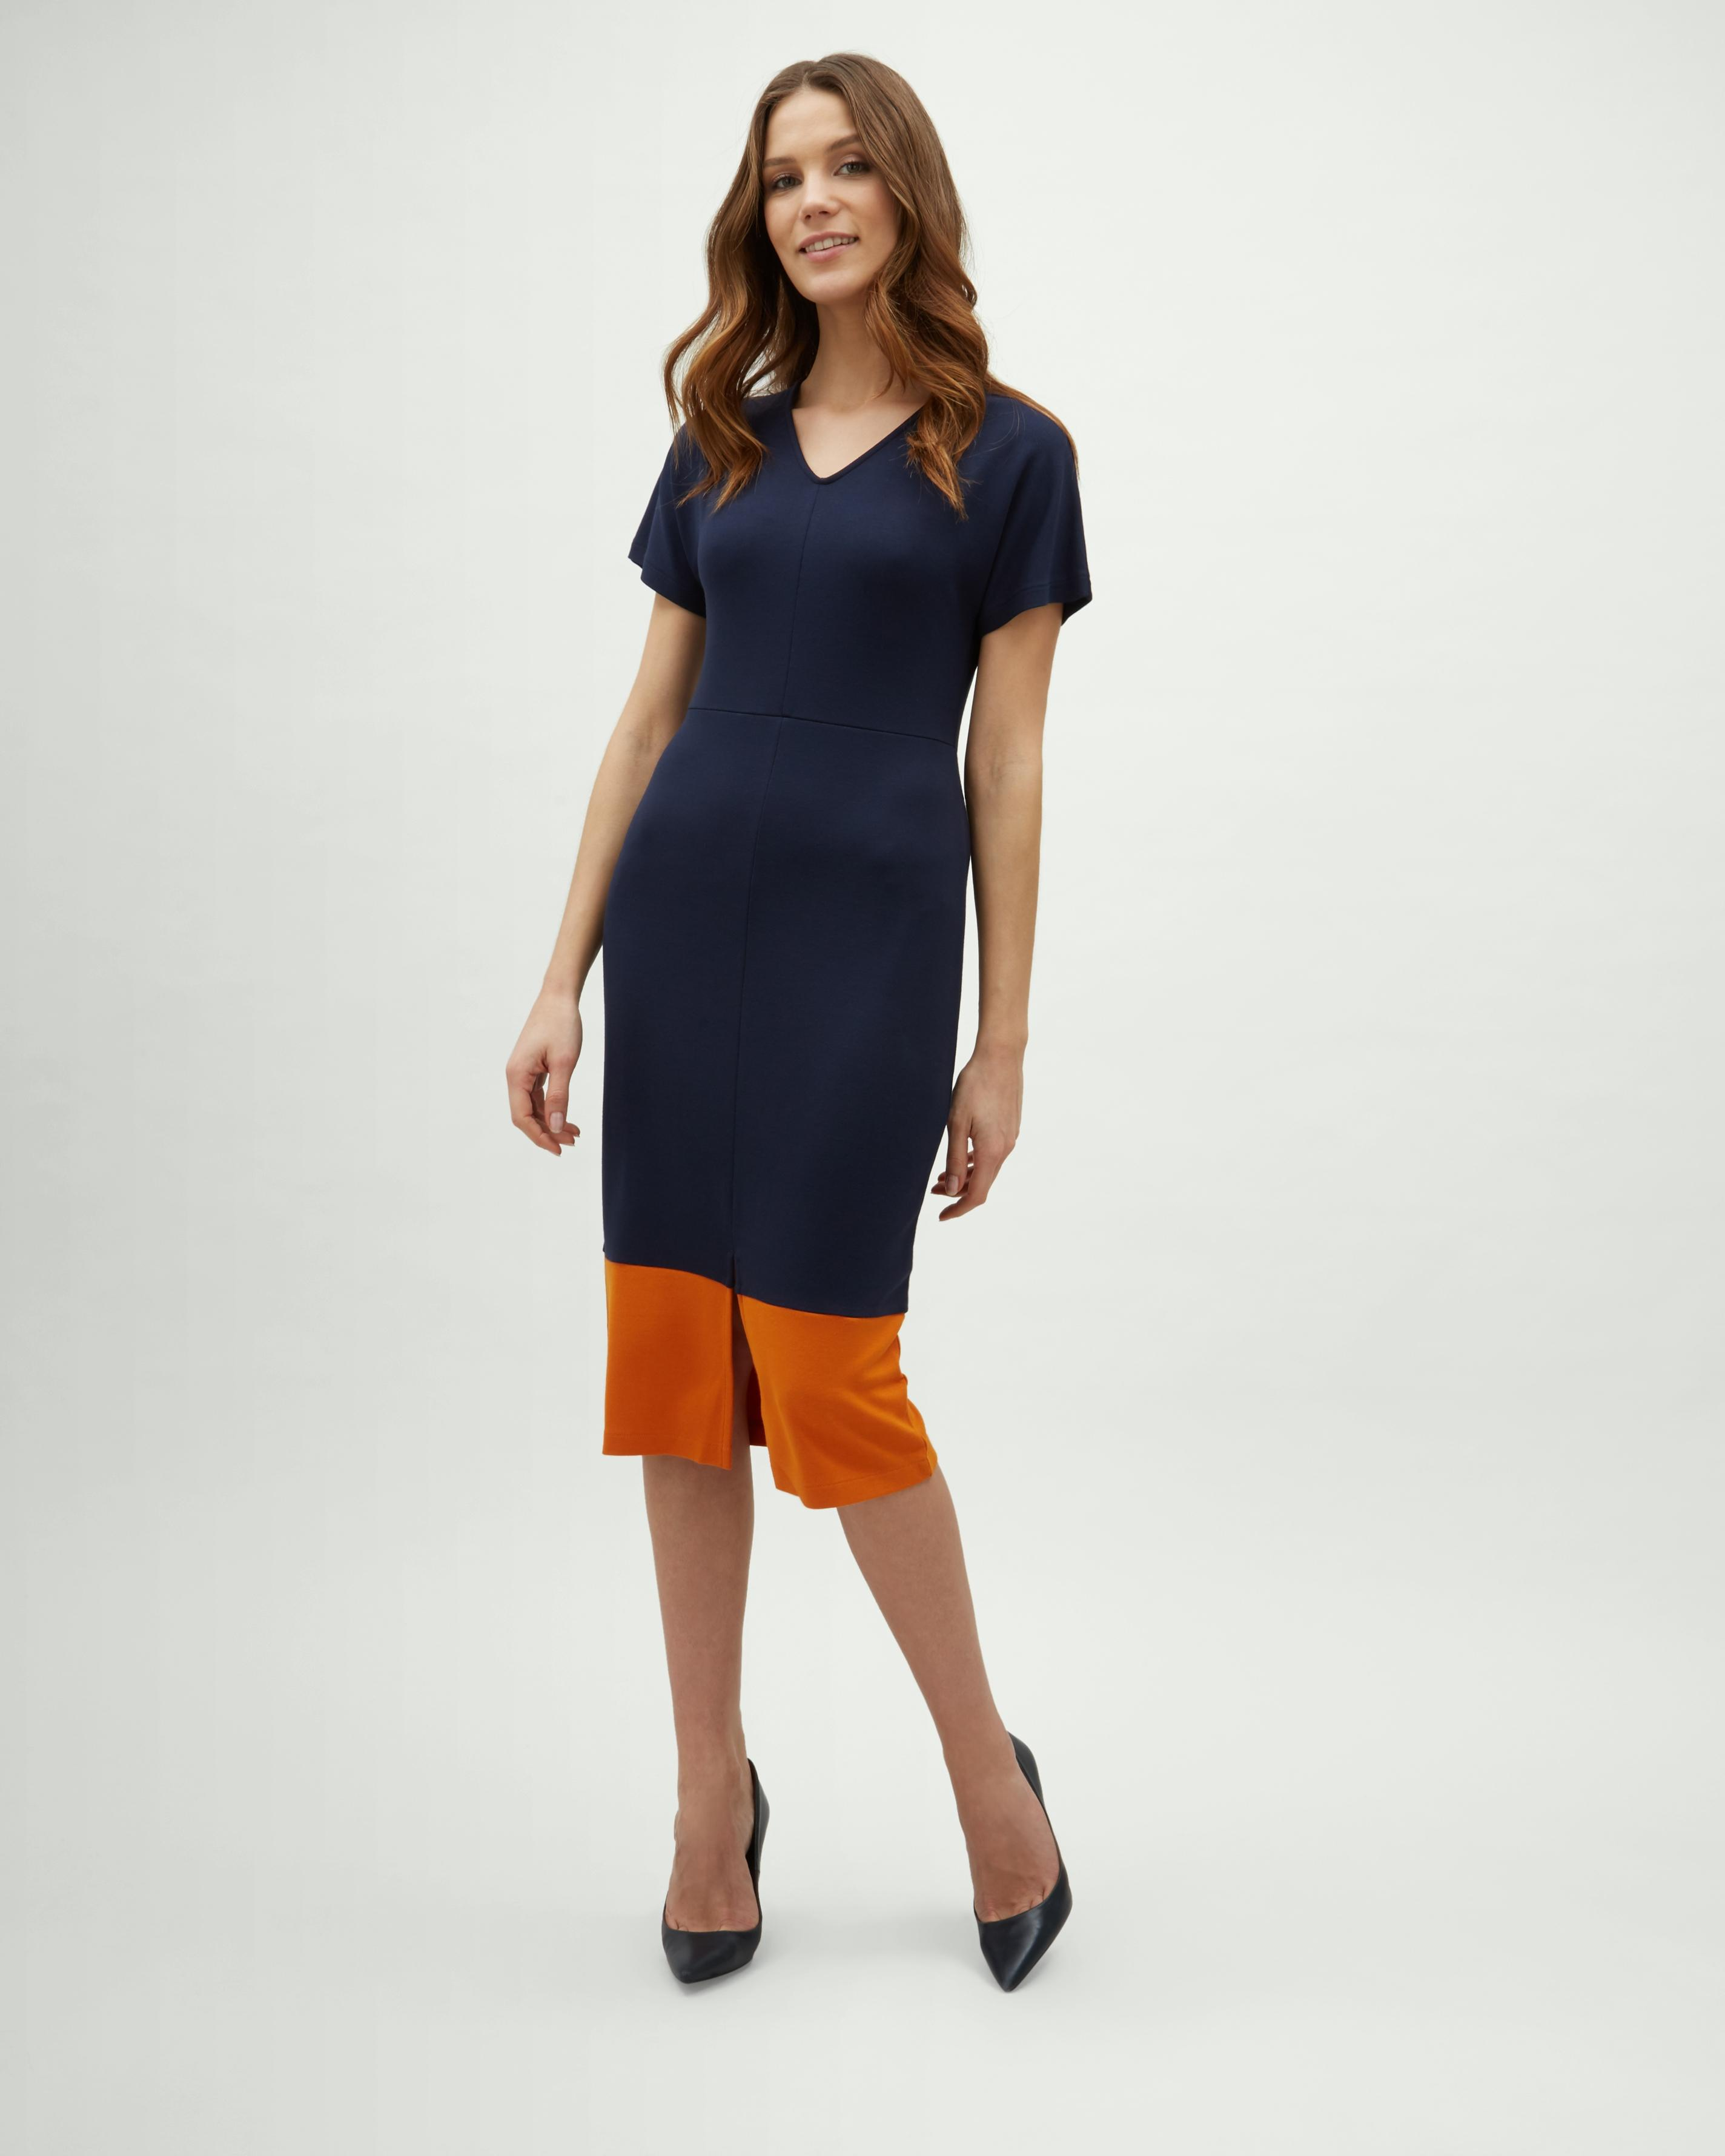 Lyst - Jaeger Colour Block Fitted Dress in Blue ea6837d6d